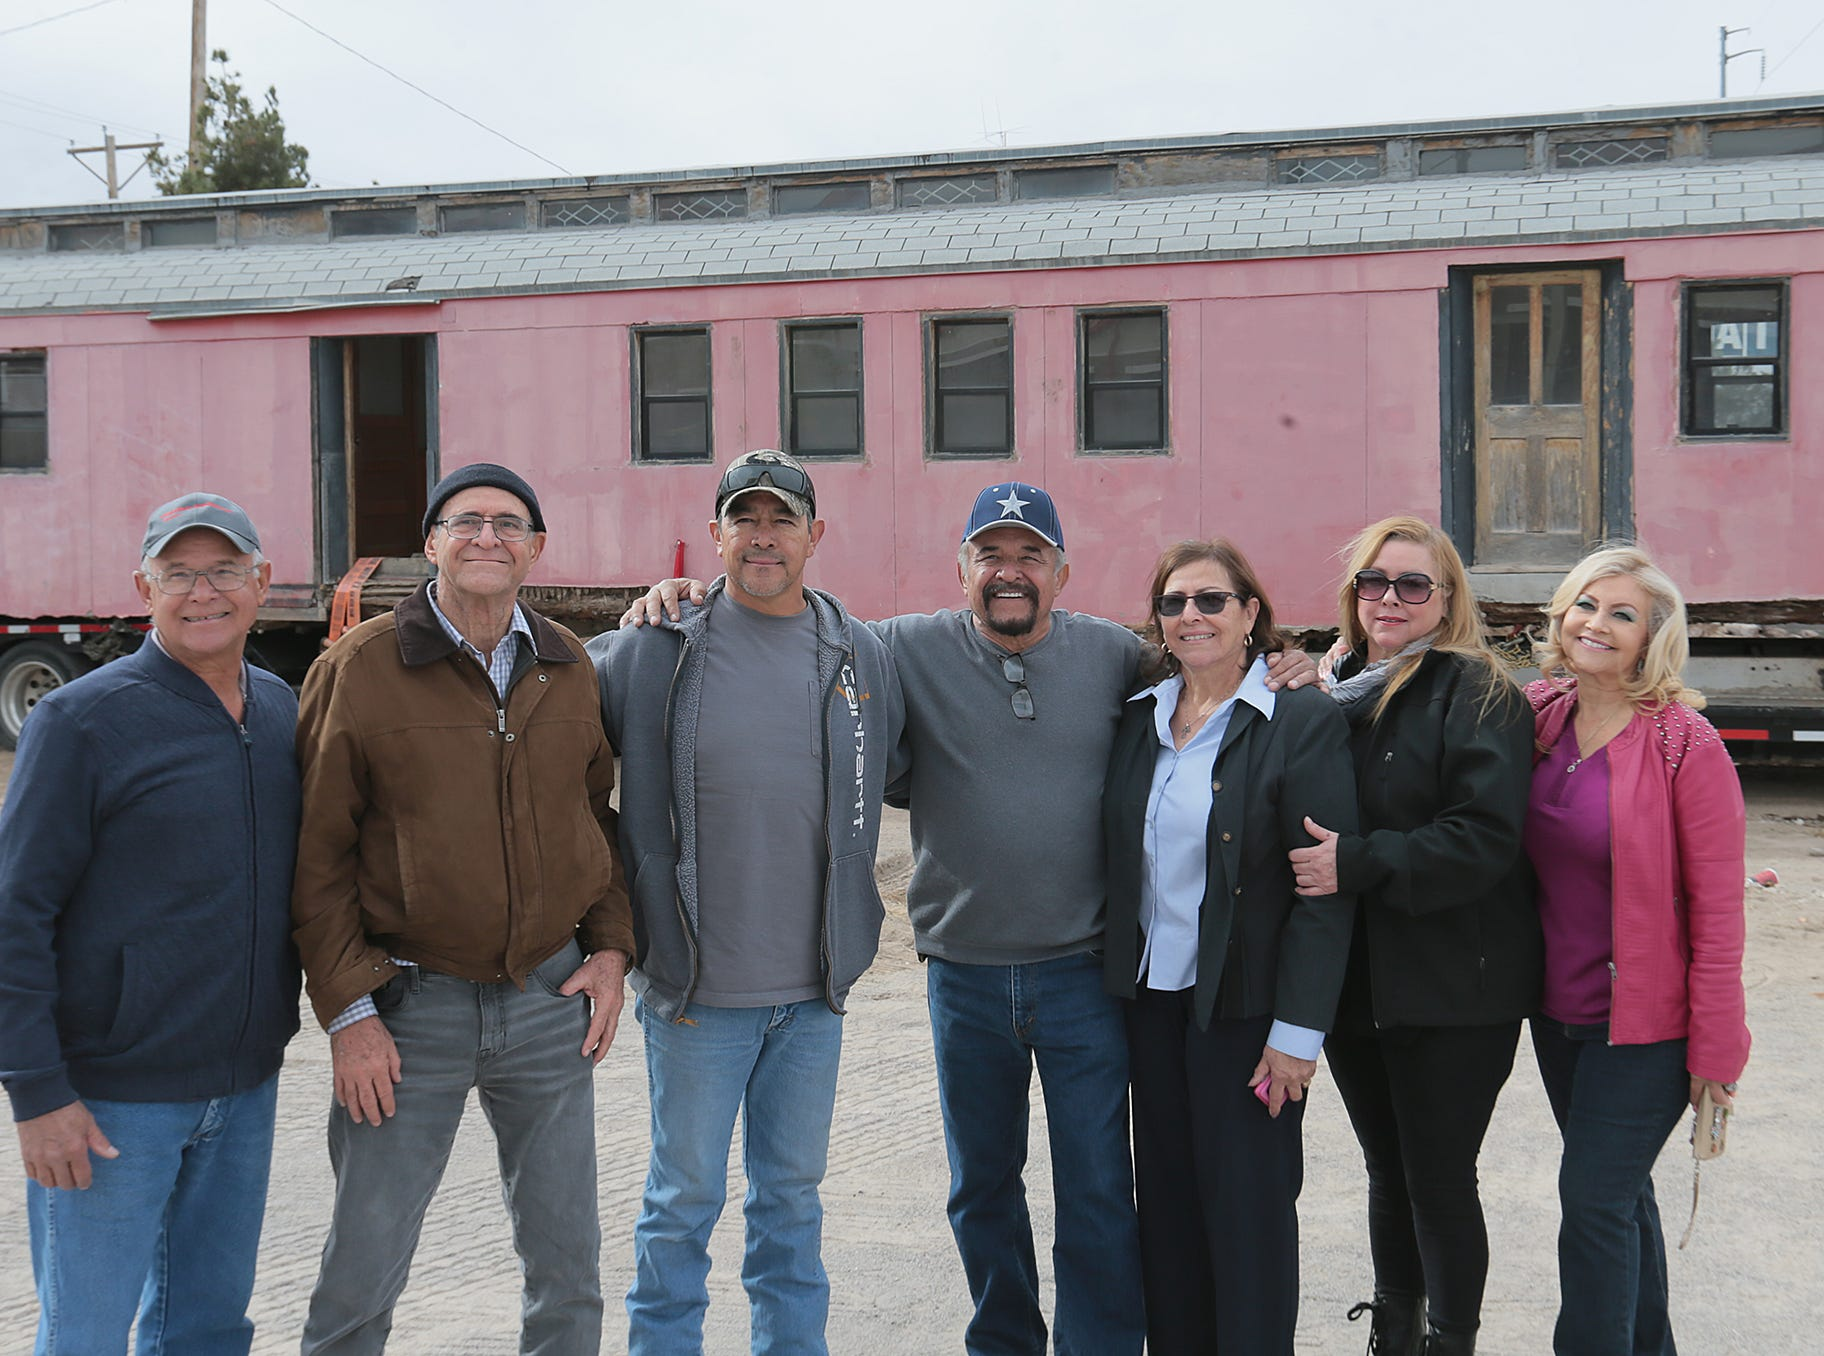 Historic Train Car Which Was a Family's Home to be Refurbished